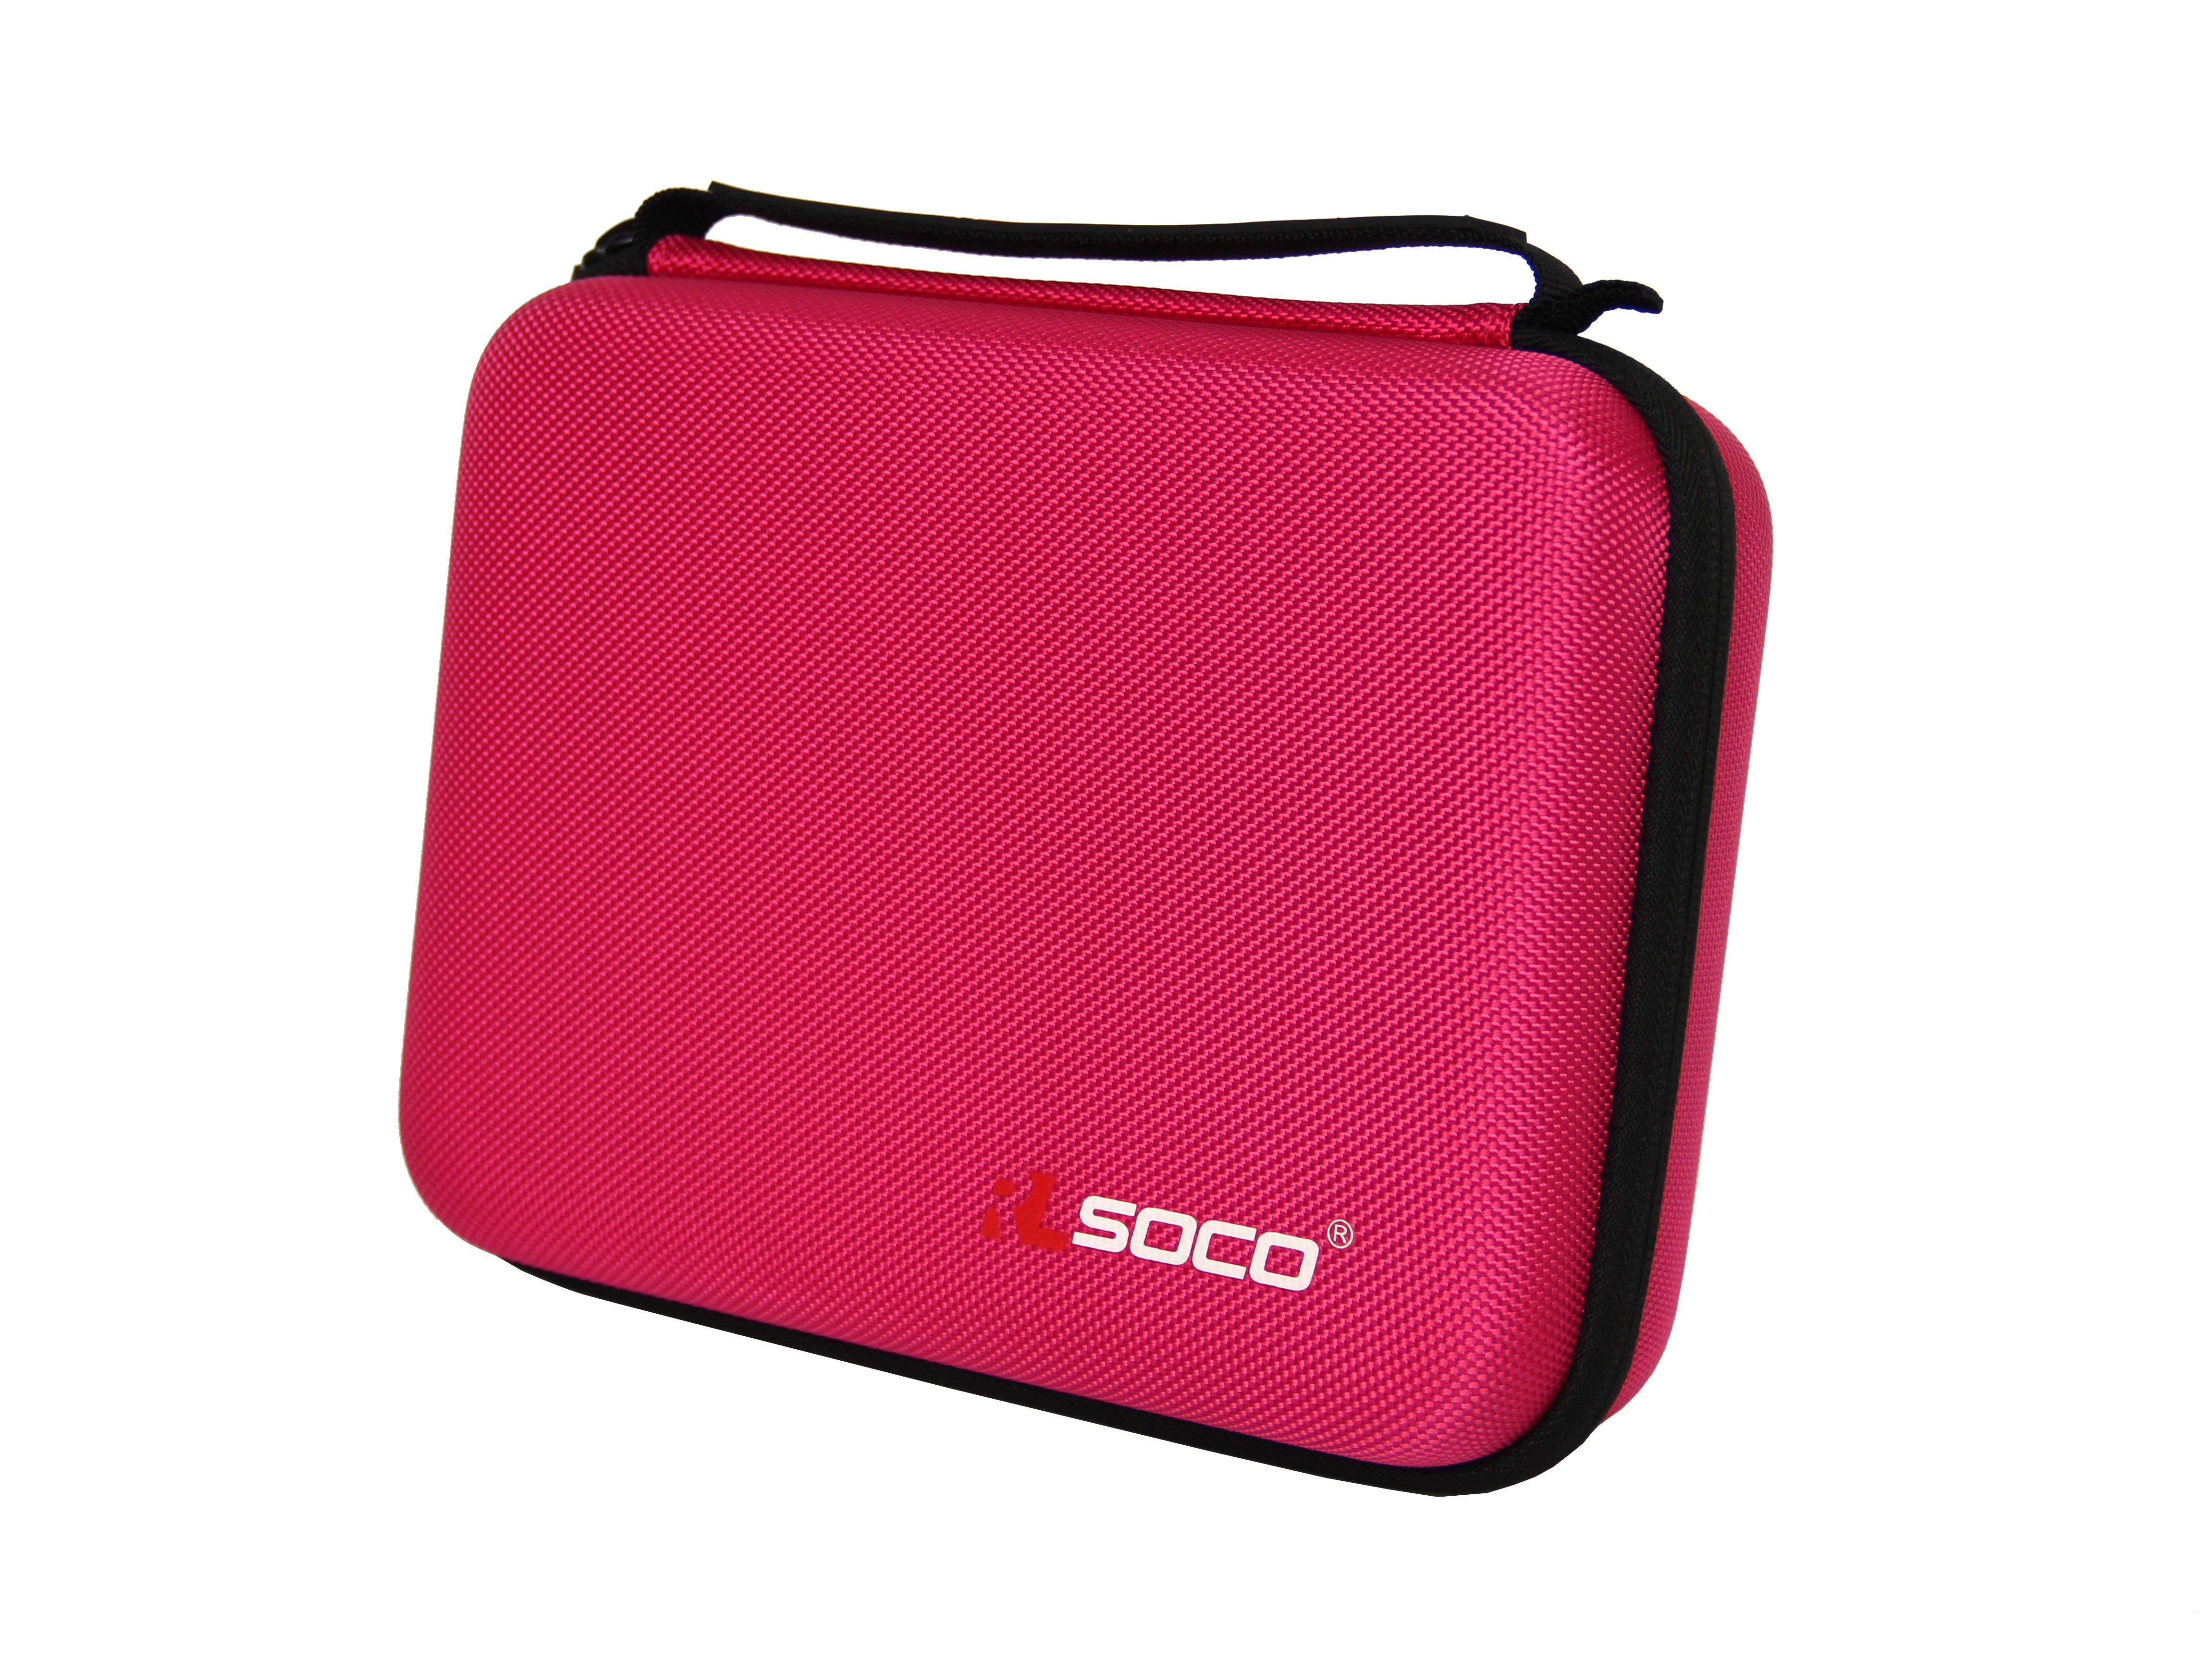 Top Quality shockproof gopro casey storage case best manufacturers Featured Image